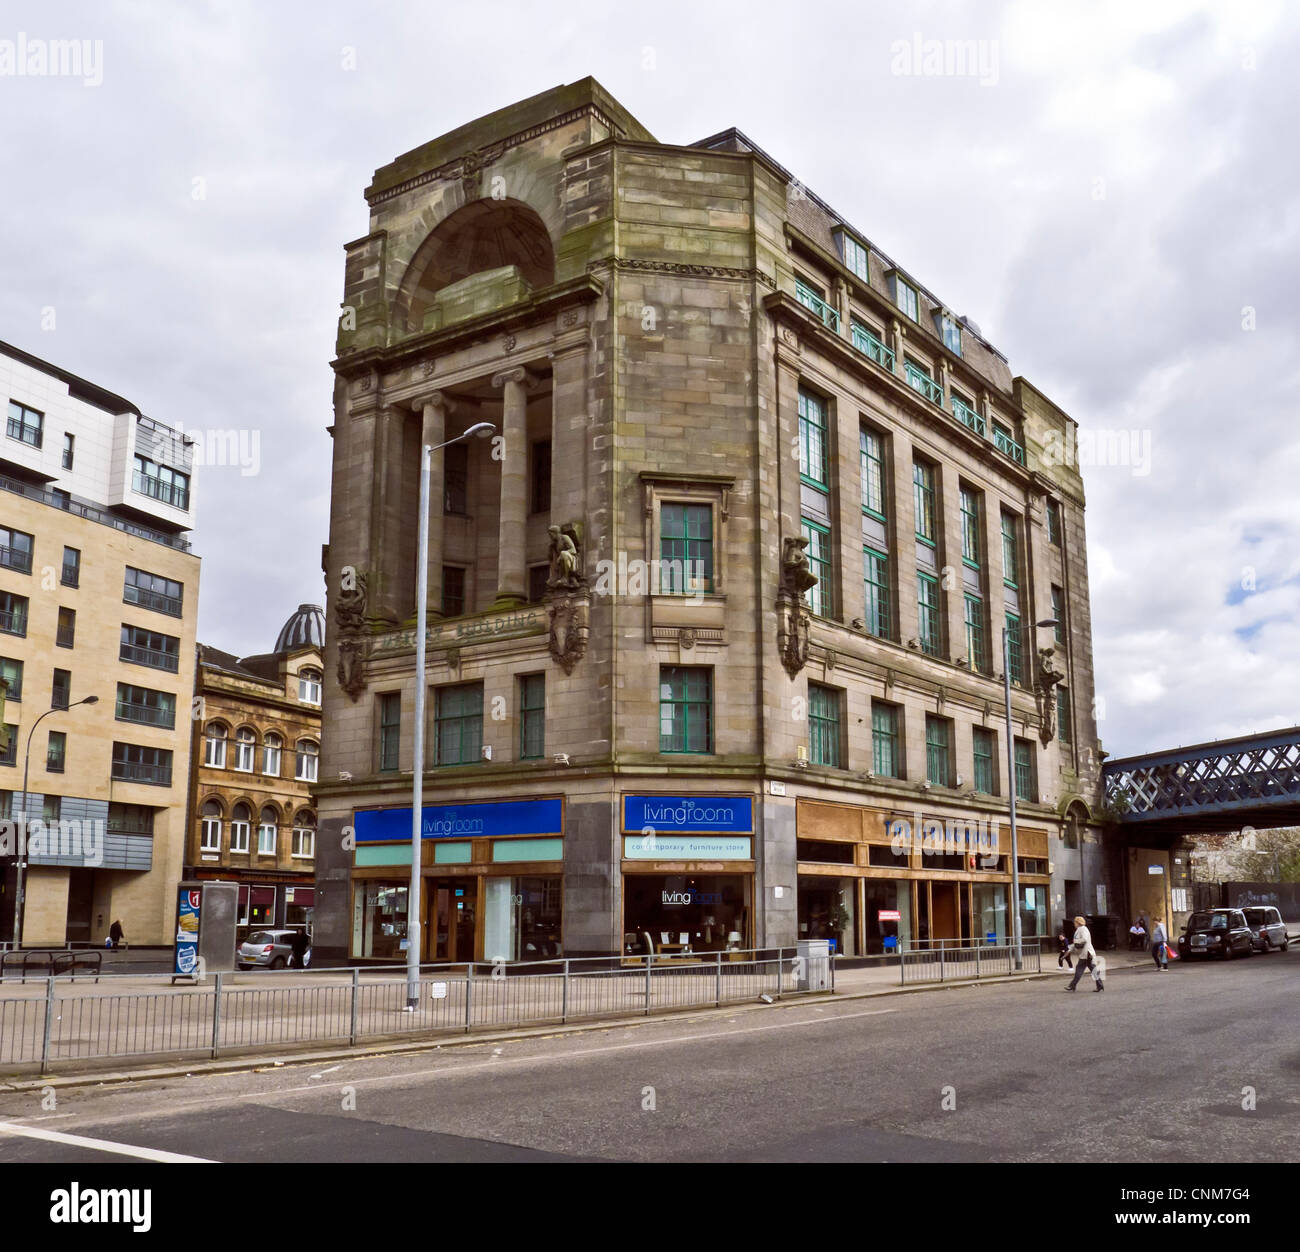 The Mercat Building in Gallowgate by Glasgow Cross in the east end of Glasgow. - Stock Image